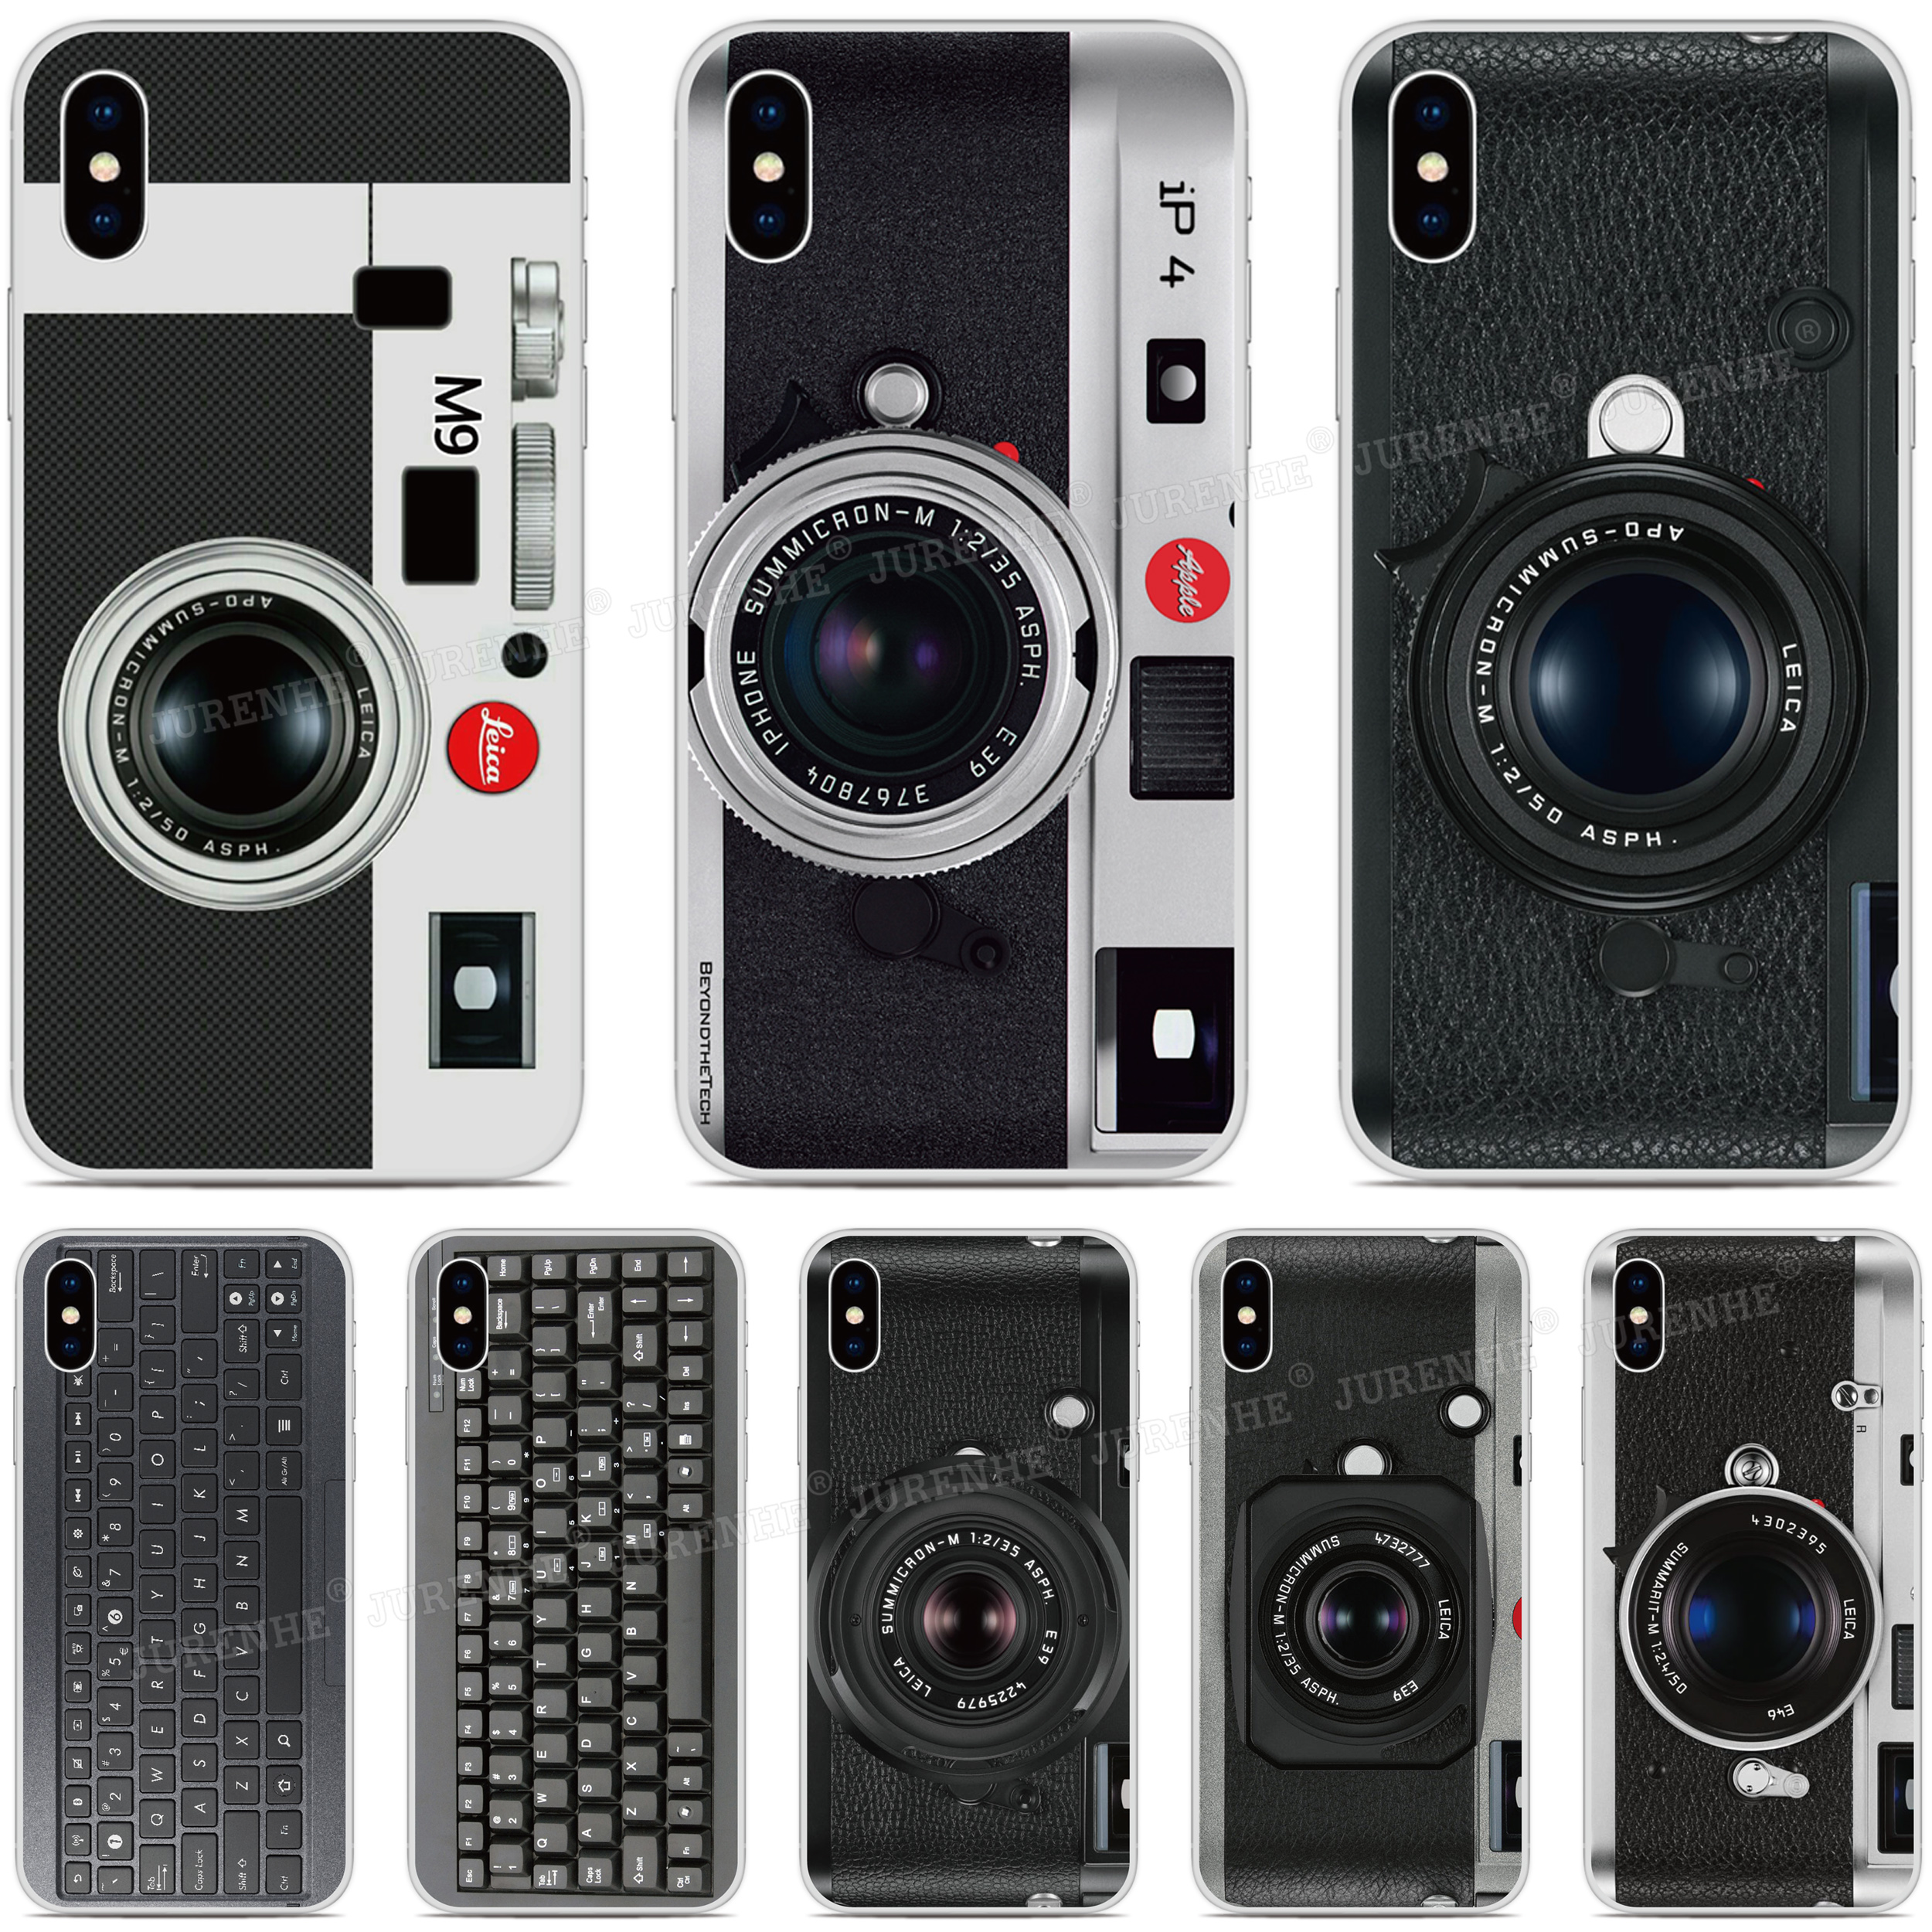 Soft Silicone <font><b>Camera</b></font> Speaker Cover Cases For <font><b>Oukitel</b></font> C18 <font><b>K6000</b></font> C17 C16 C15 C13 C12 U25 <font><b>Pro</b></font> K9 K3 U22 U20 Plus Y4800 Phone Case image